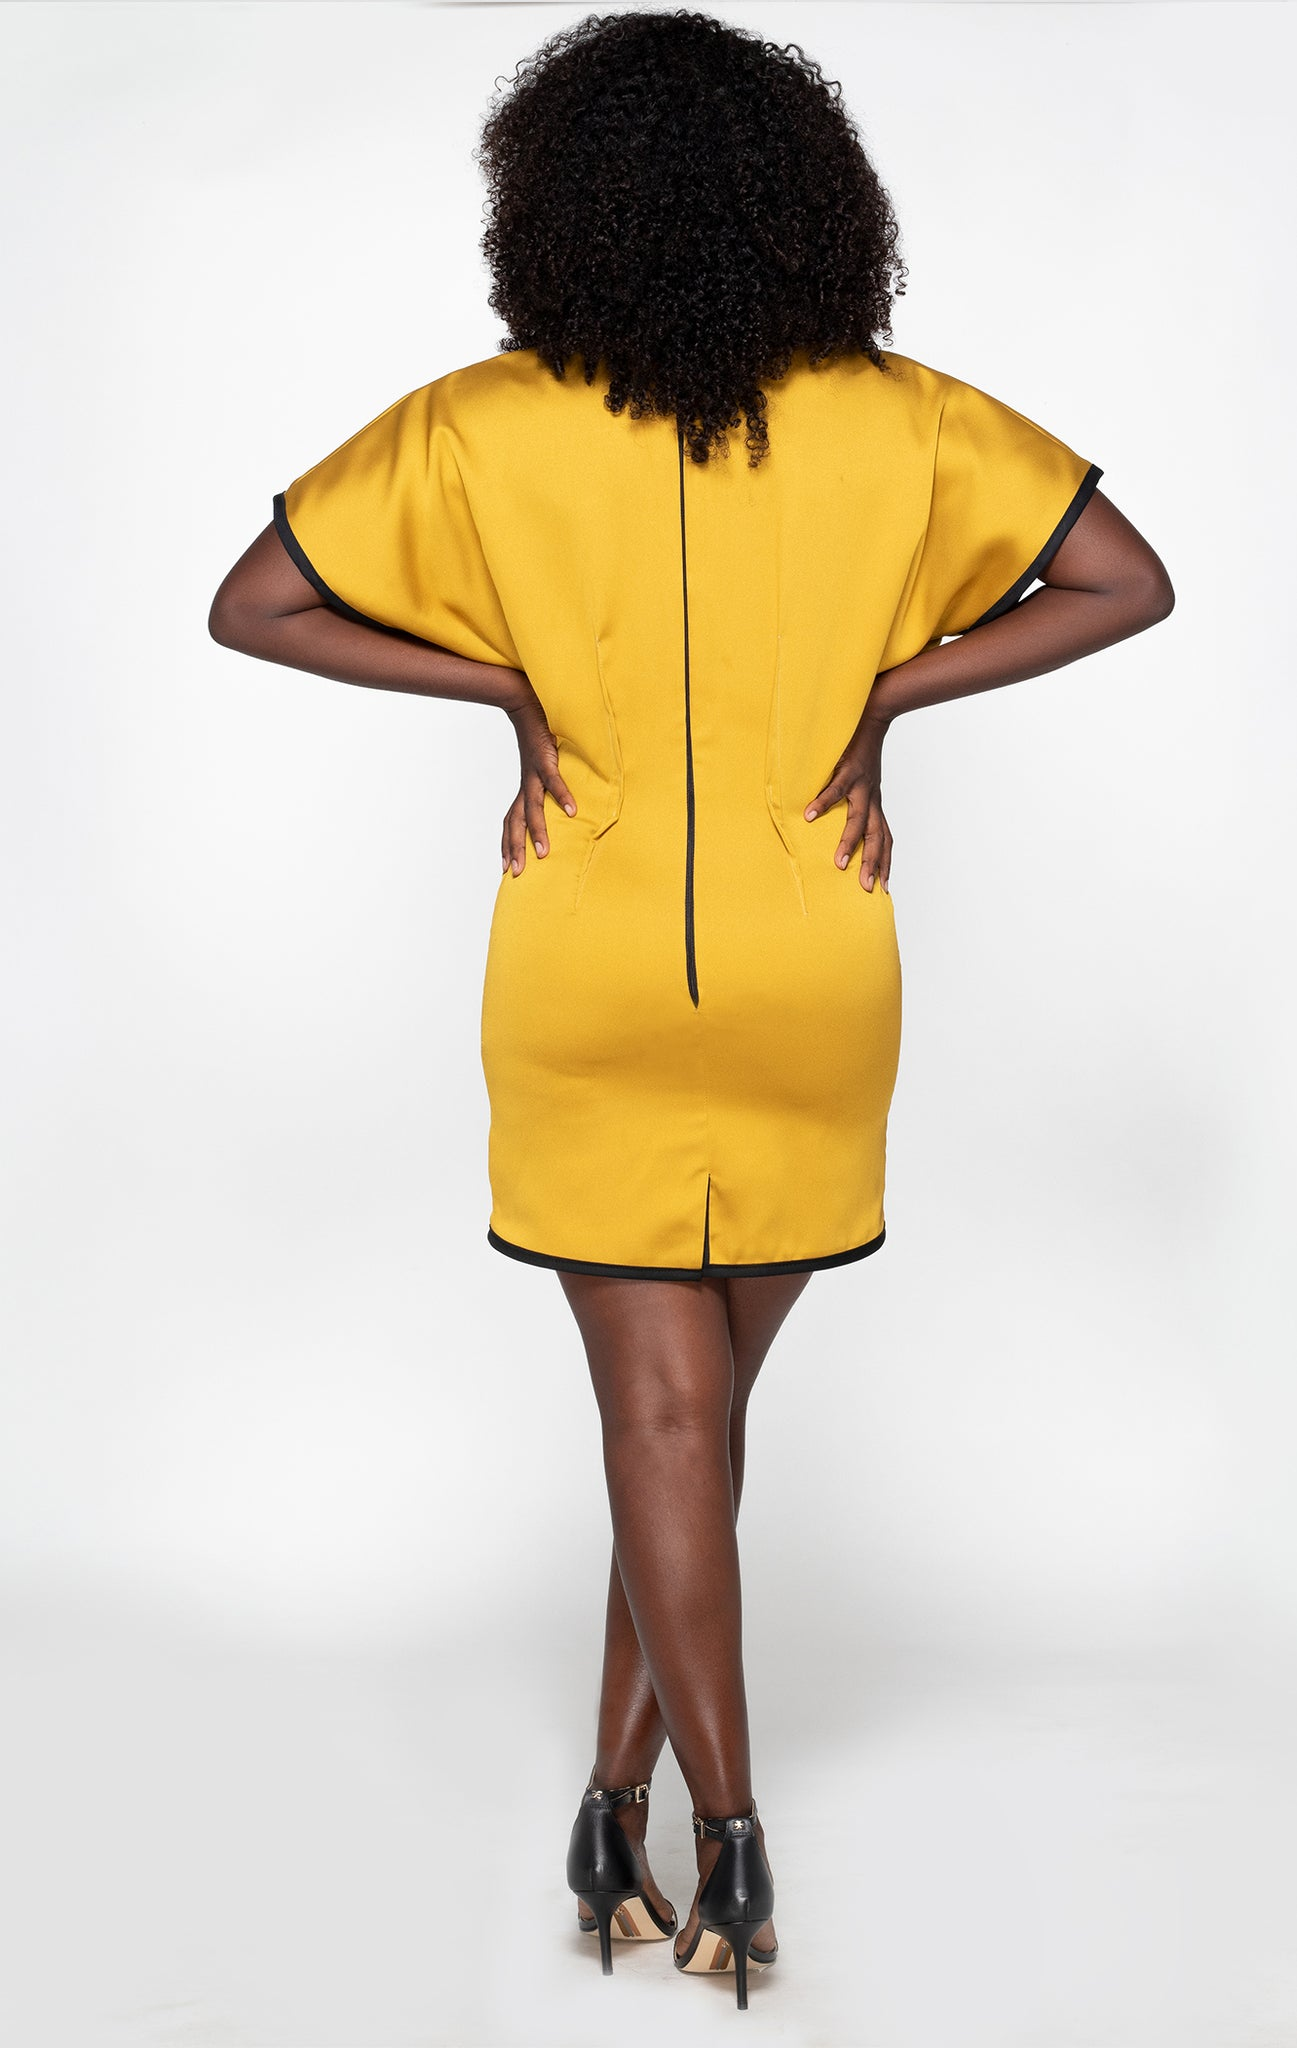 Dolman sleeve dress back view